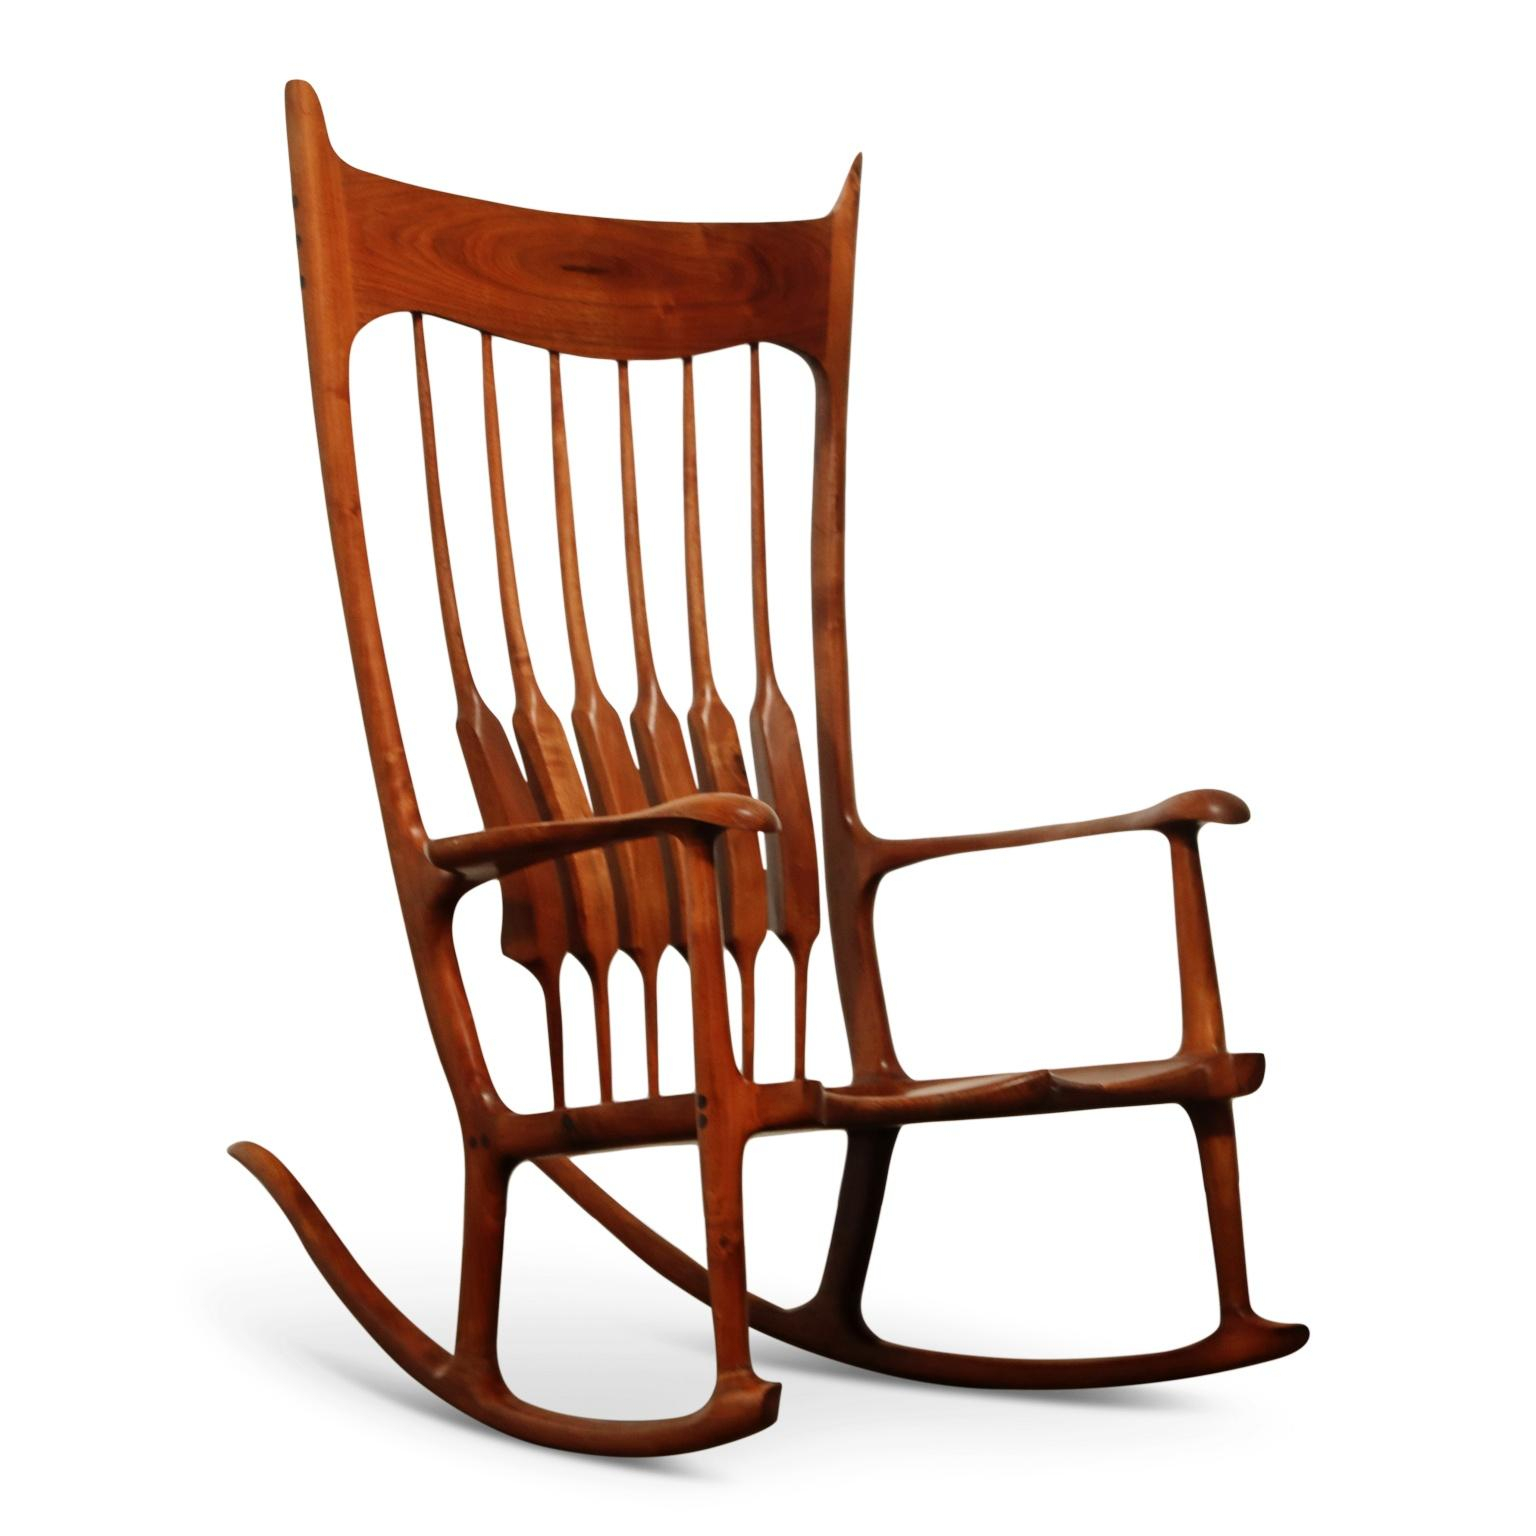 Large Scale Sam Maloof Style Studio Craftsman Rocking Chair, Signed And Dated Inside Rosewood Traditional Dark Oak Rocking Accent Chairs (View 9 of 20)